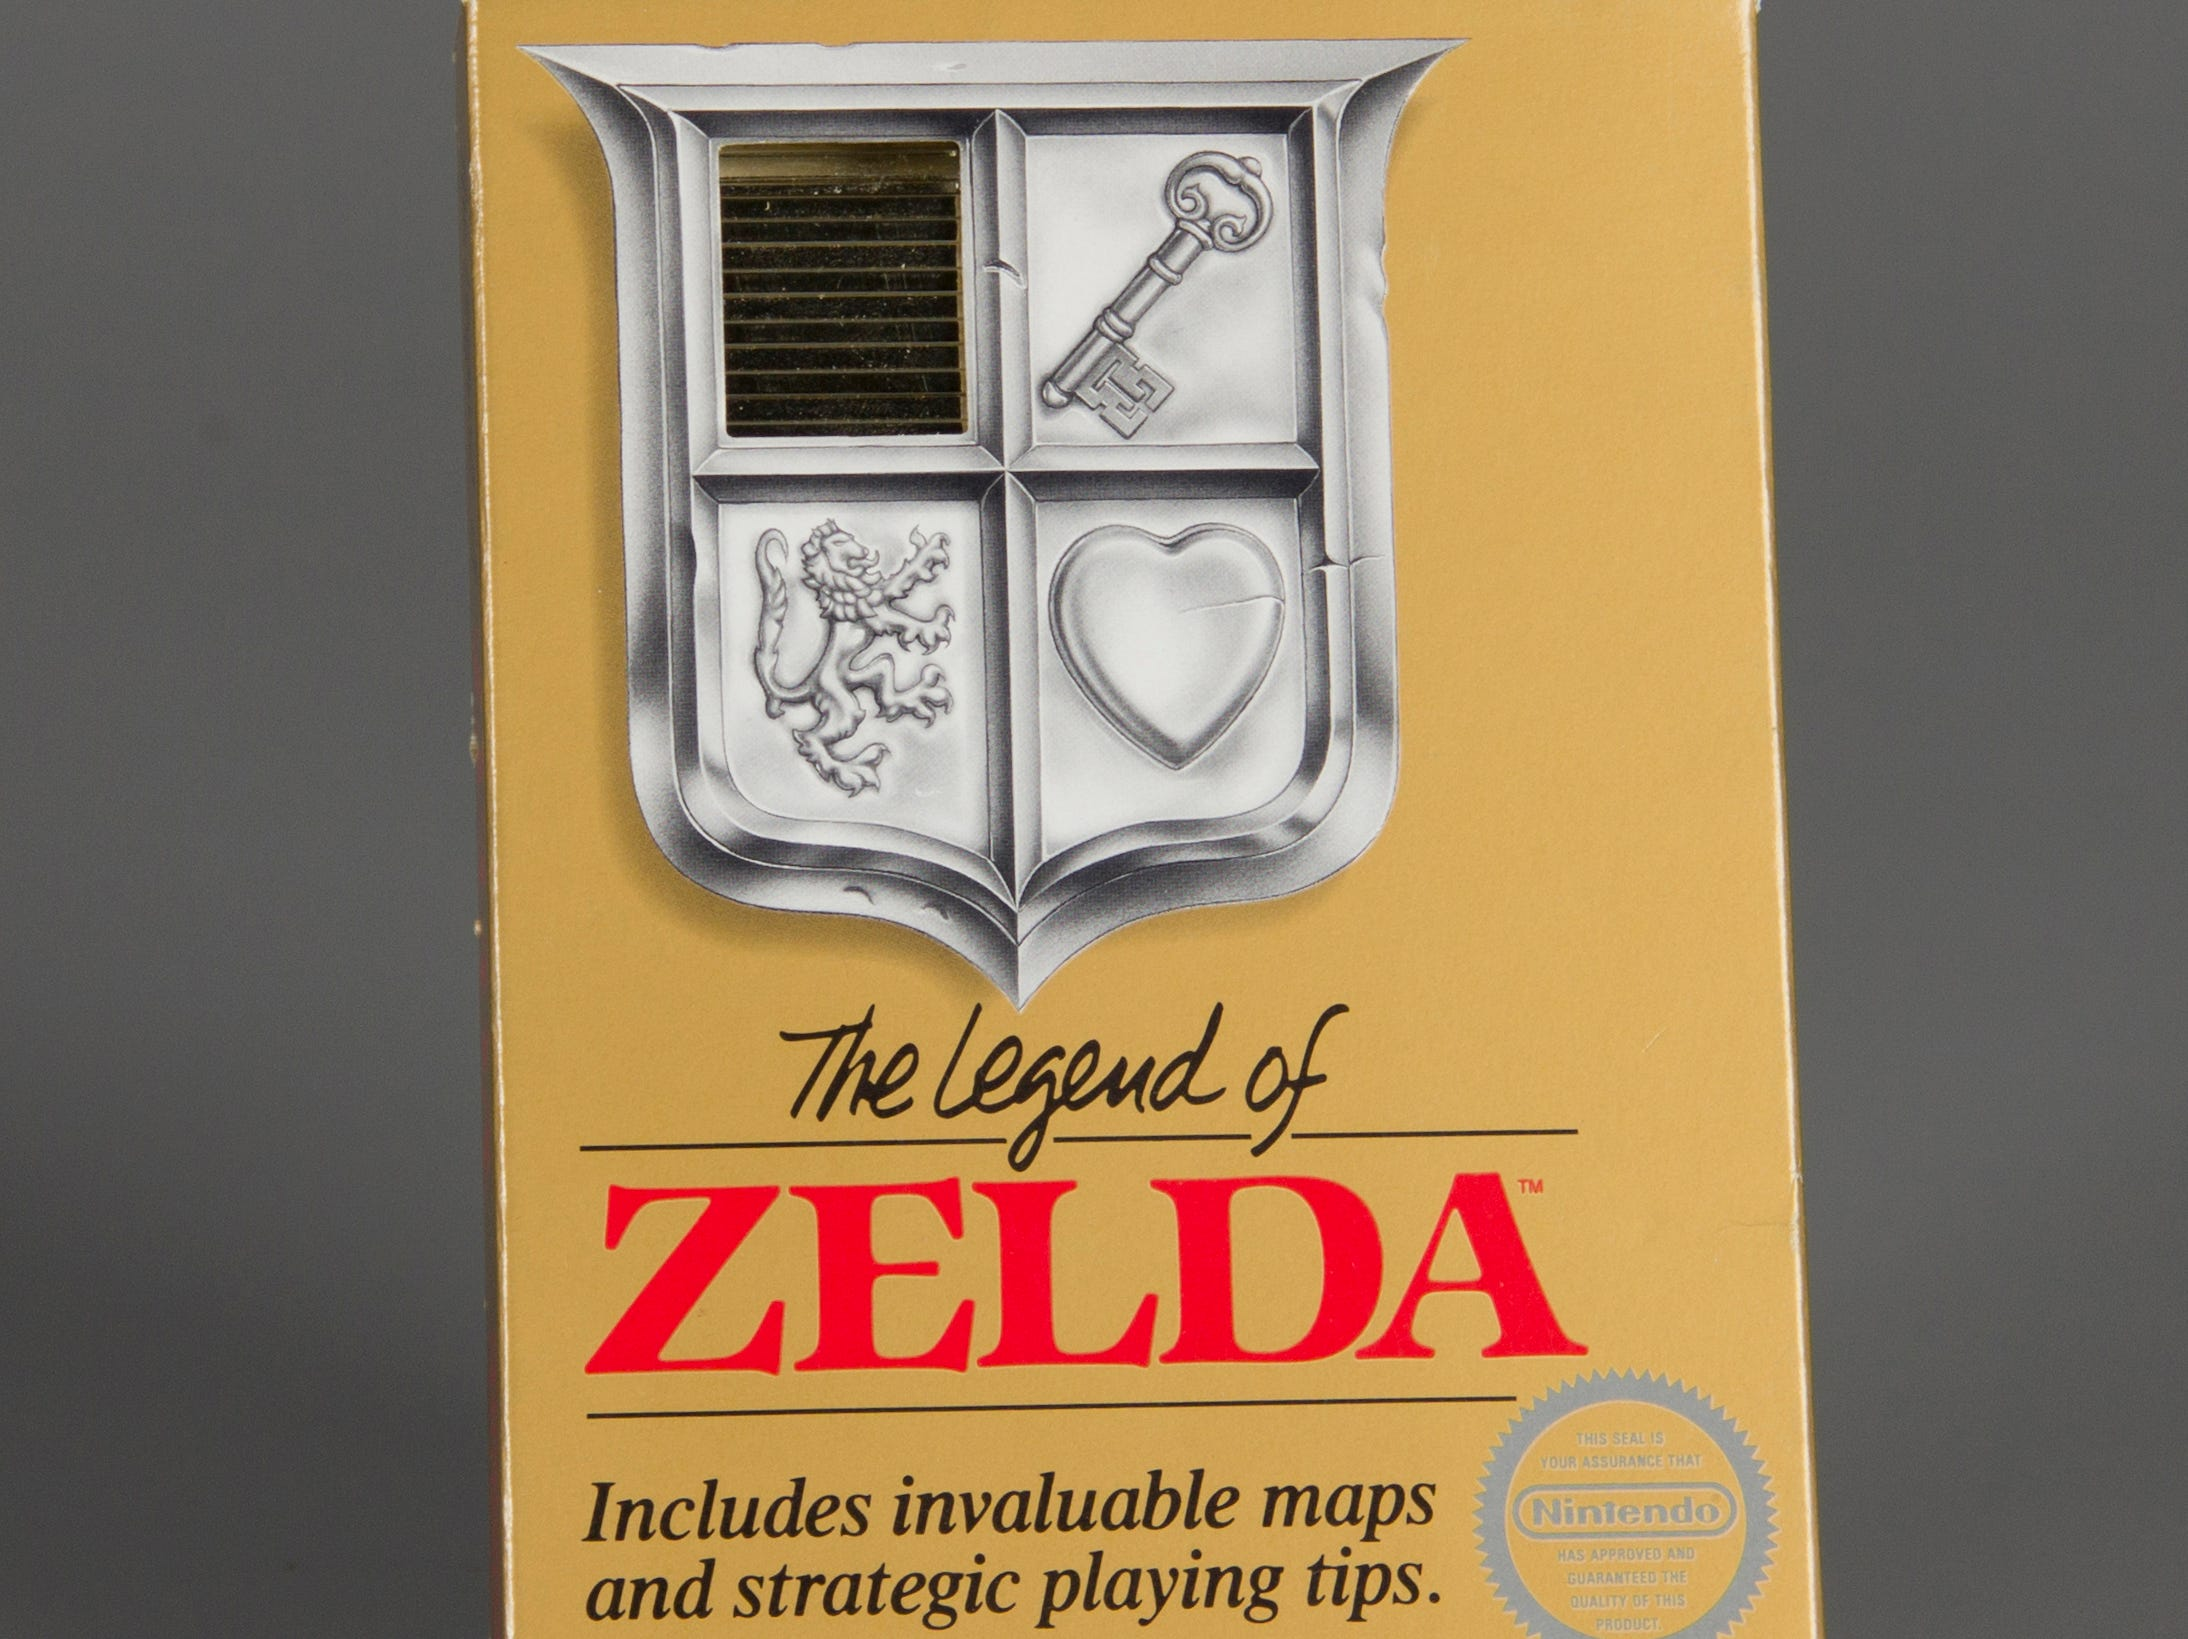 The Legend of Zelda was inducted into the World Video Game Hall of Fame at The Strong National Museum of Play in Rochester, New York in 2016.